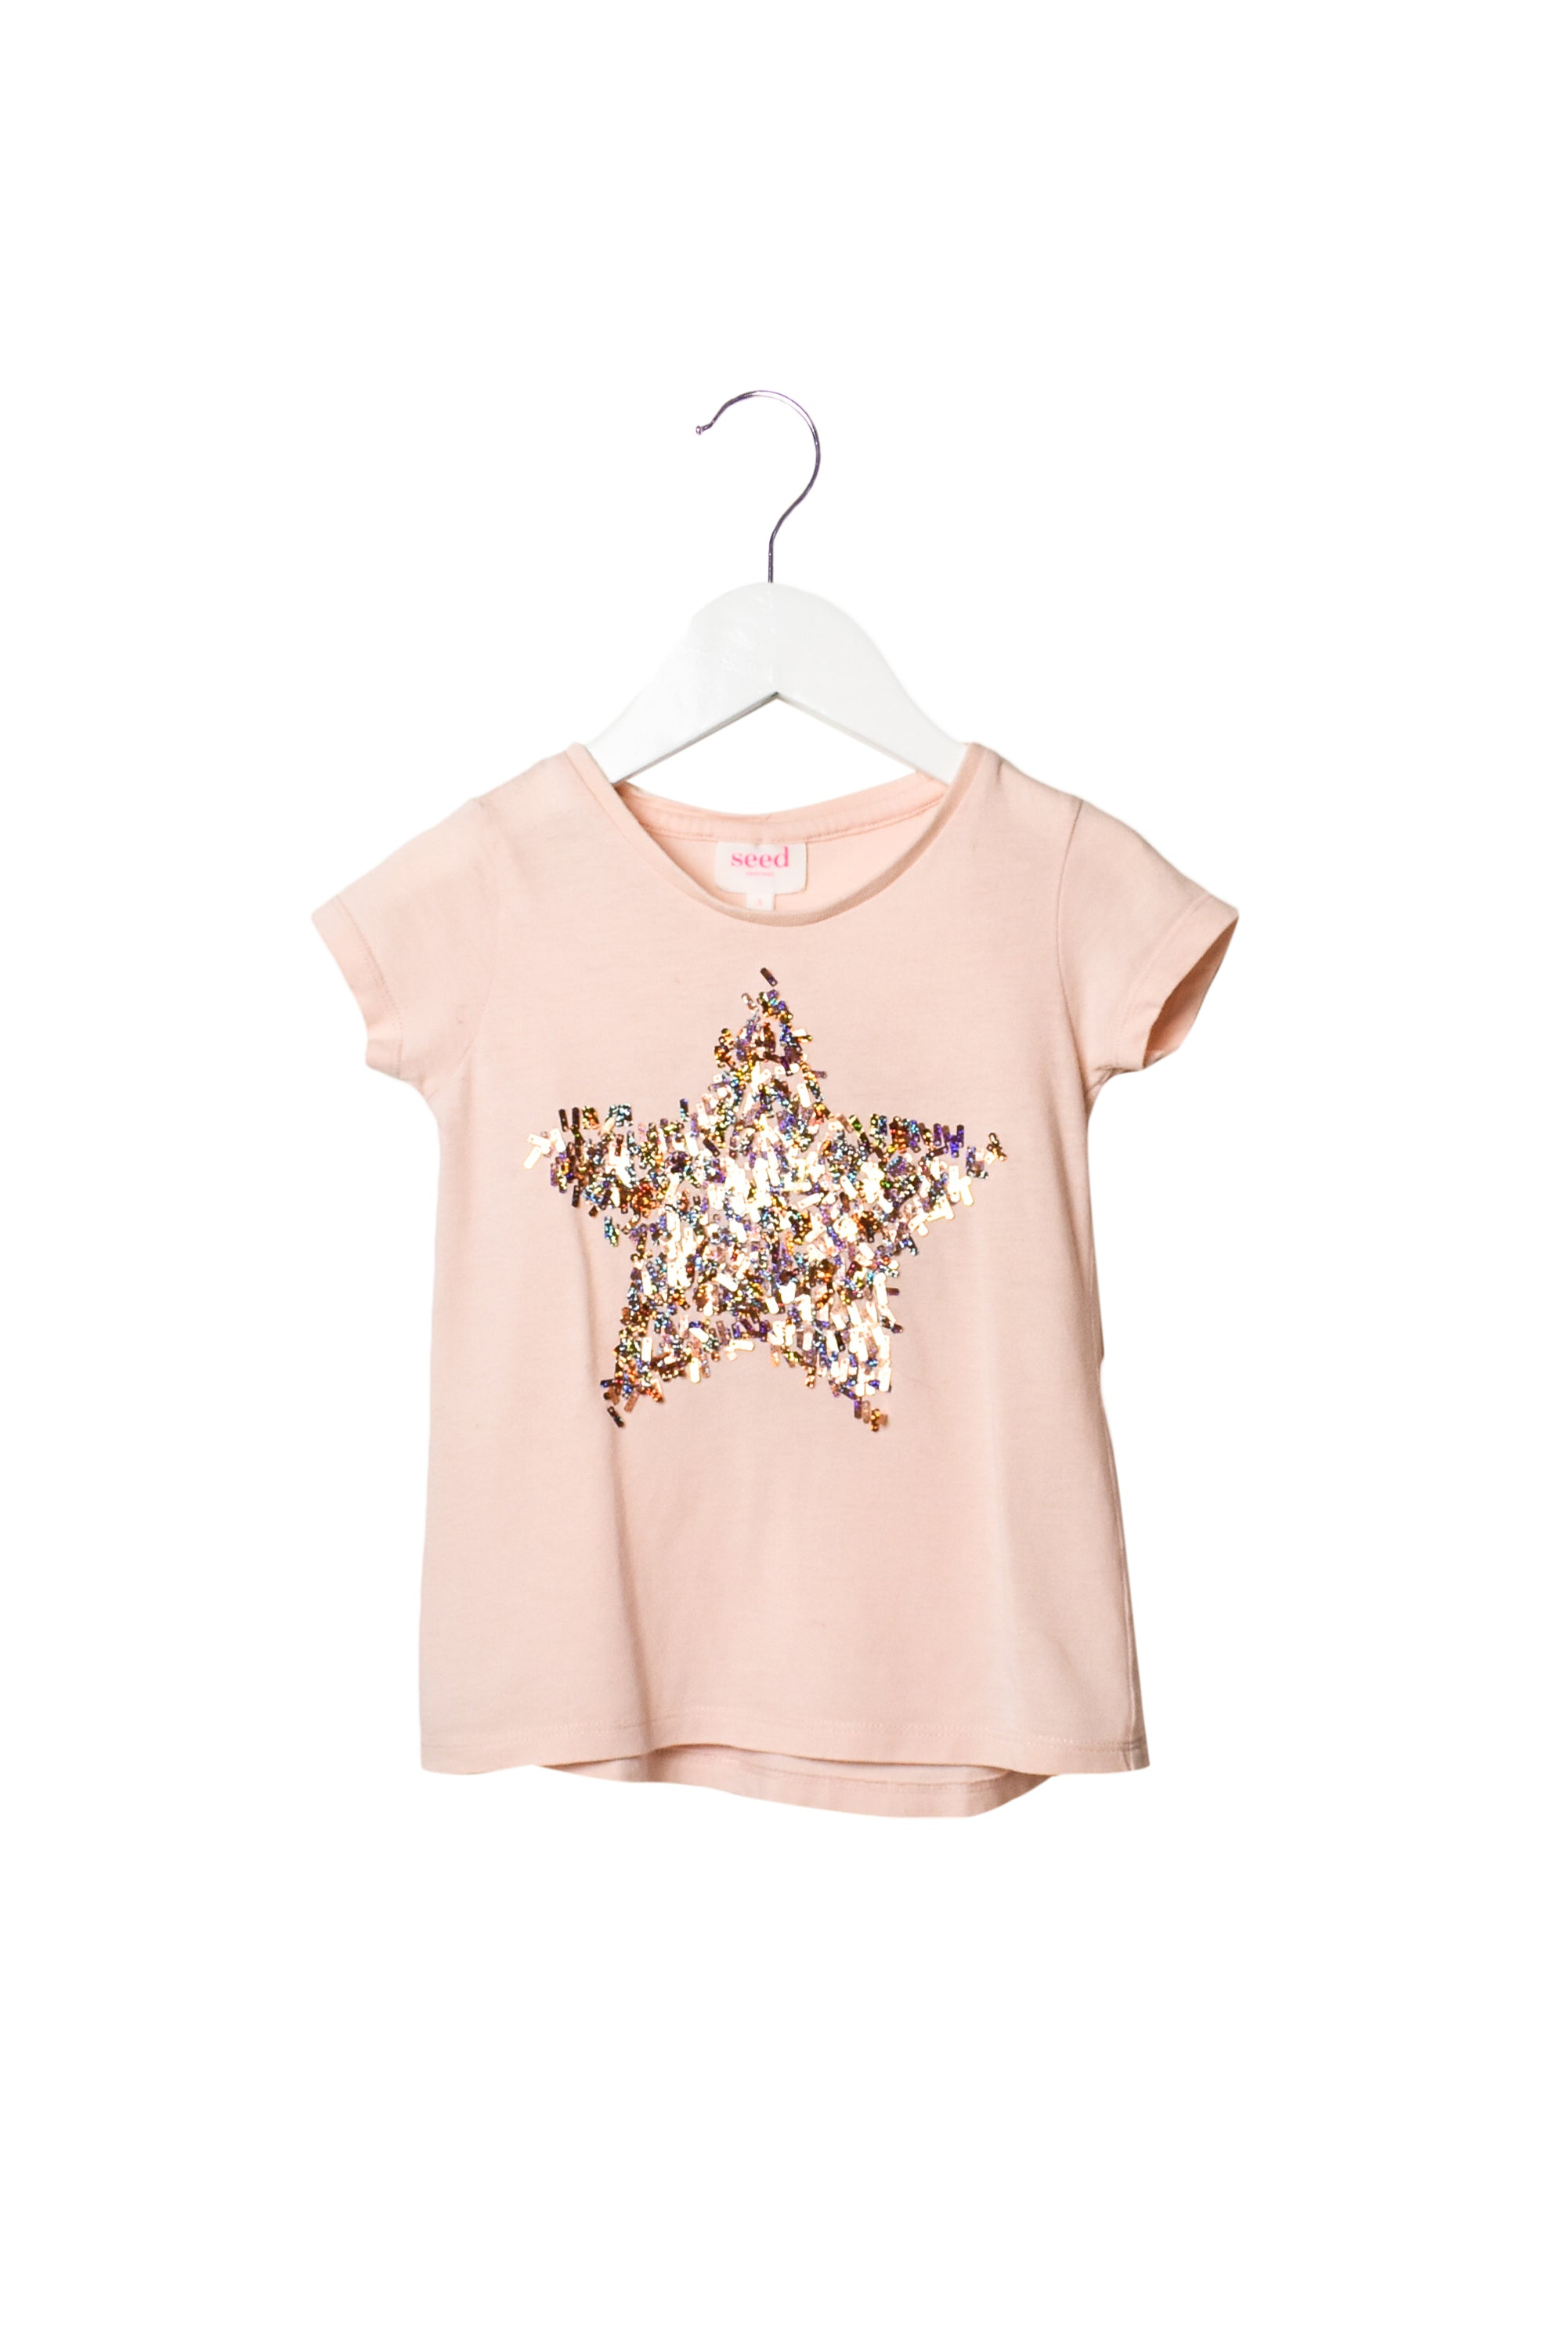 10008429 Seed Kids~T-Shirt 3T at Retykle